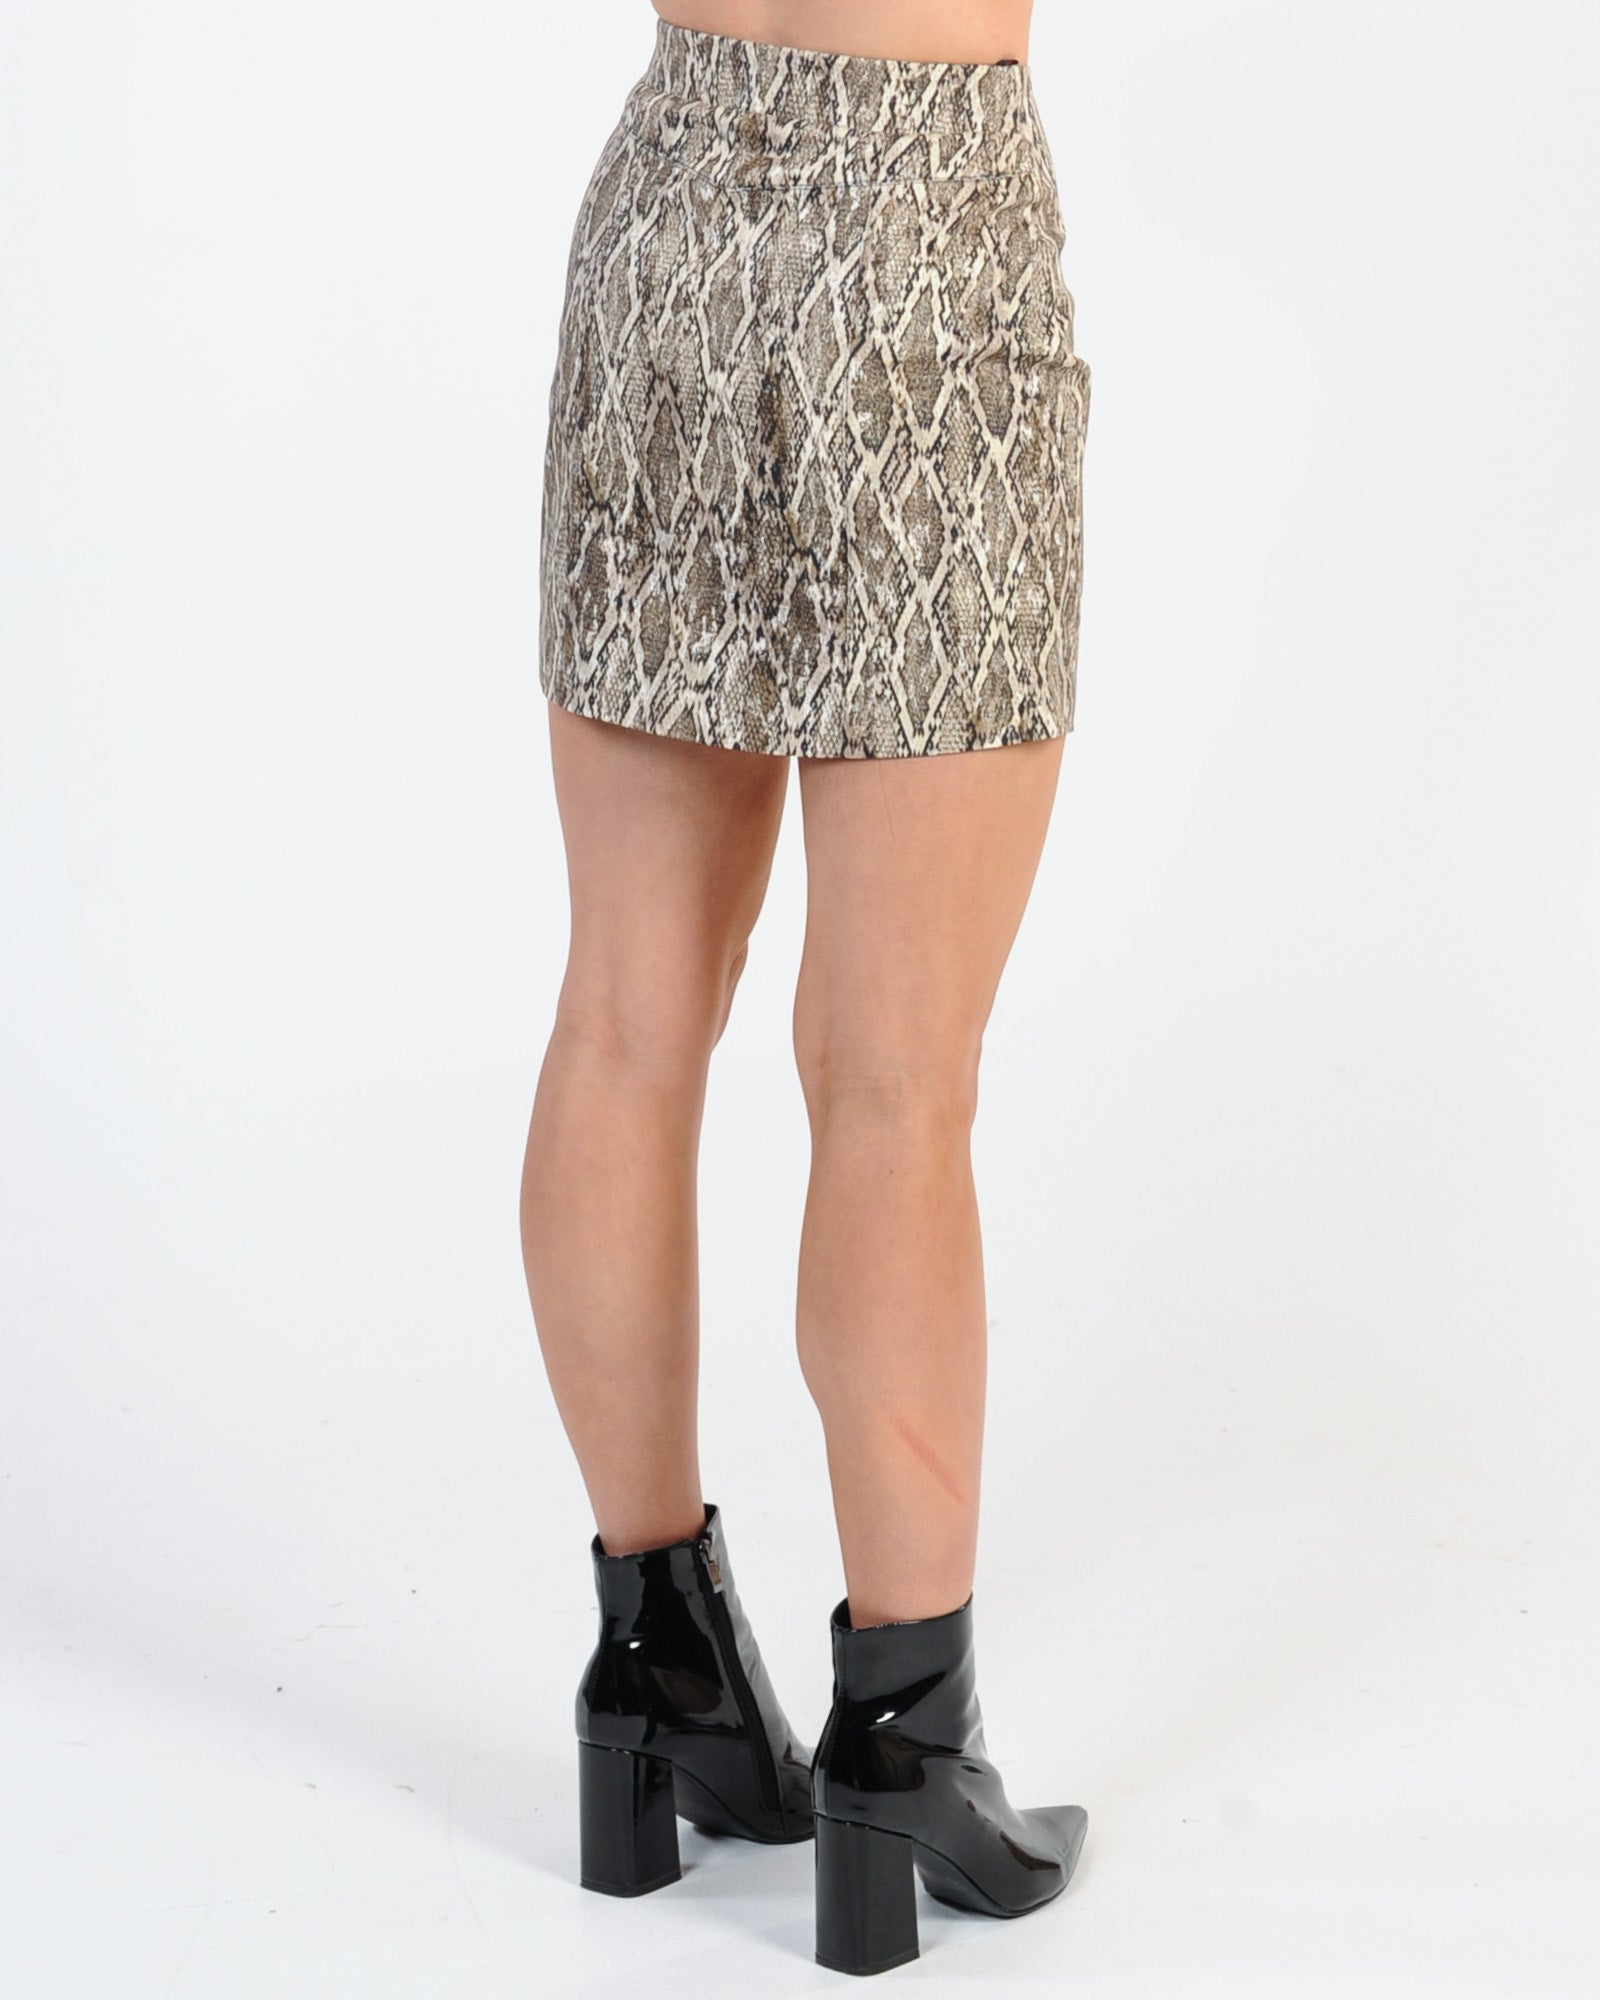 Jorge Viper Skirt - Natural